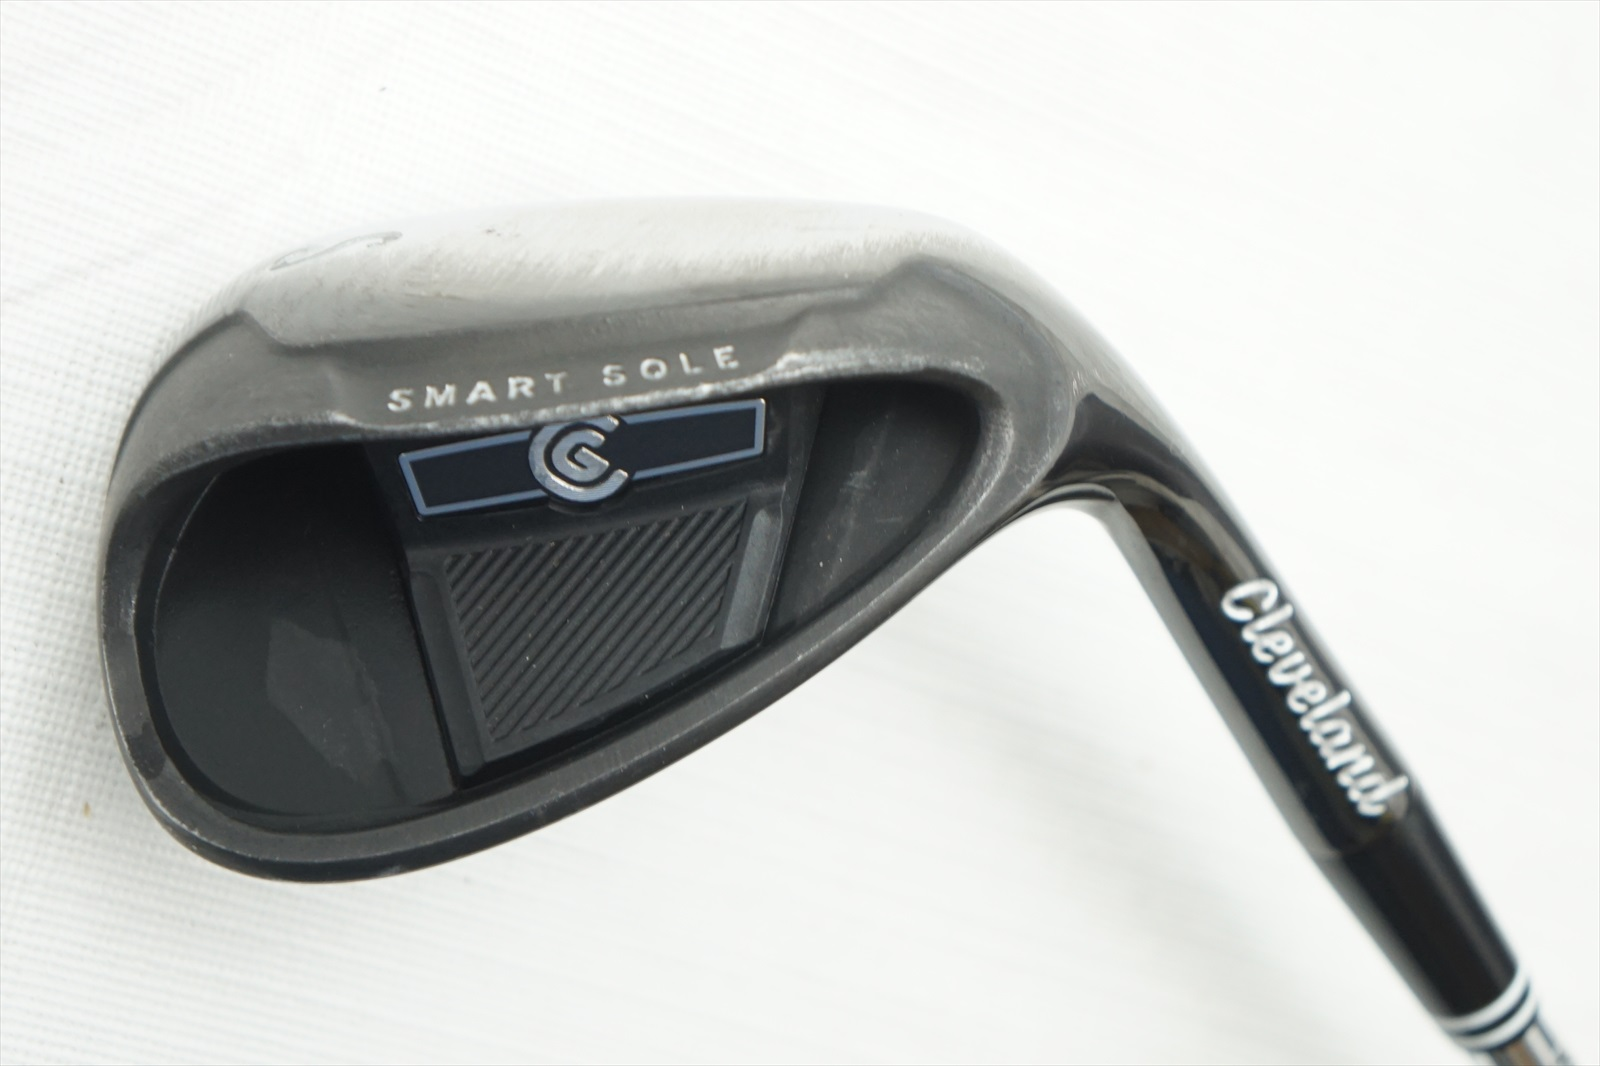 Cleveland Smart Sole S Sand Wedge Sw Degree Wedge Wedge